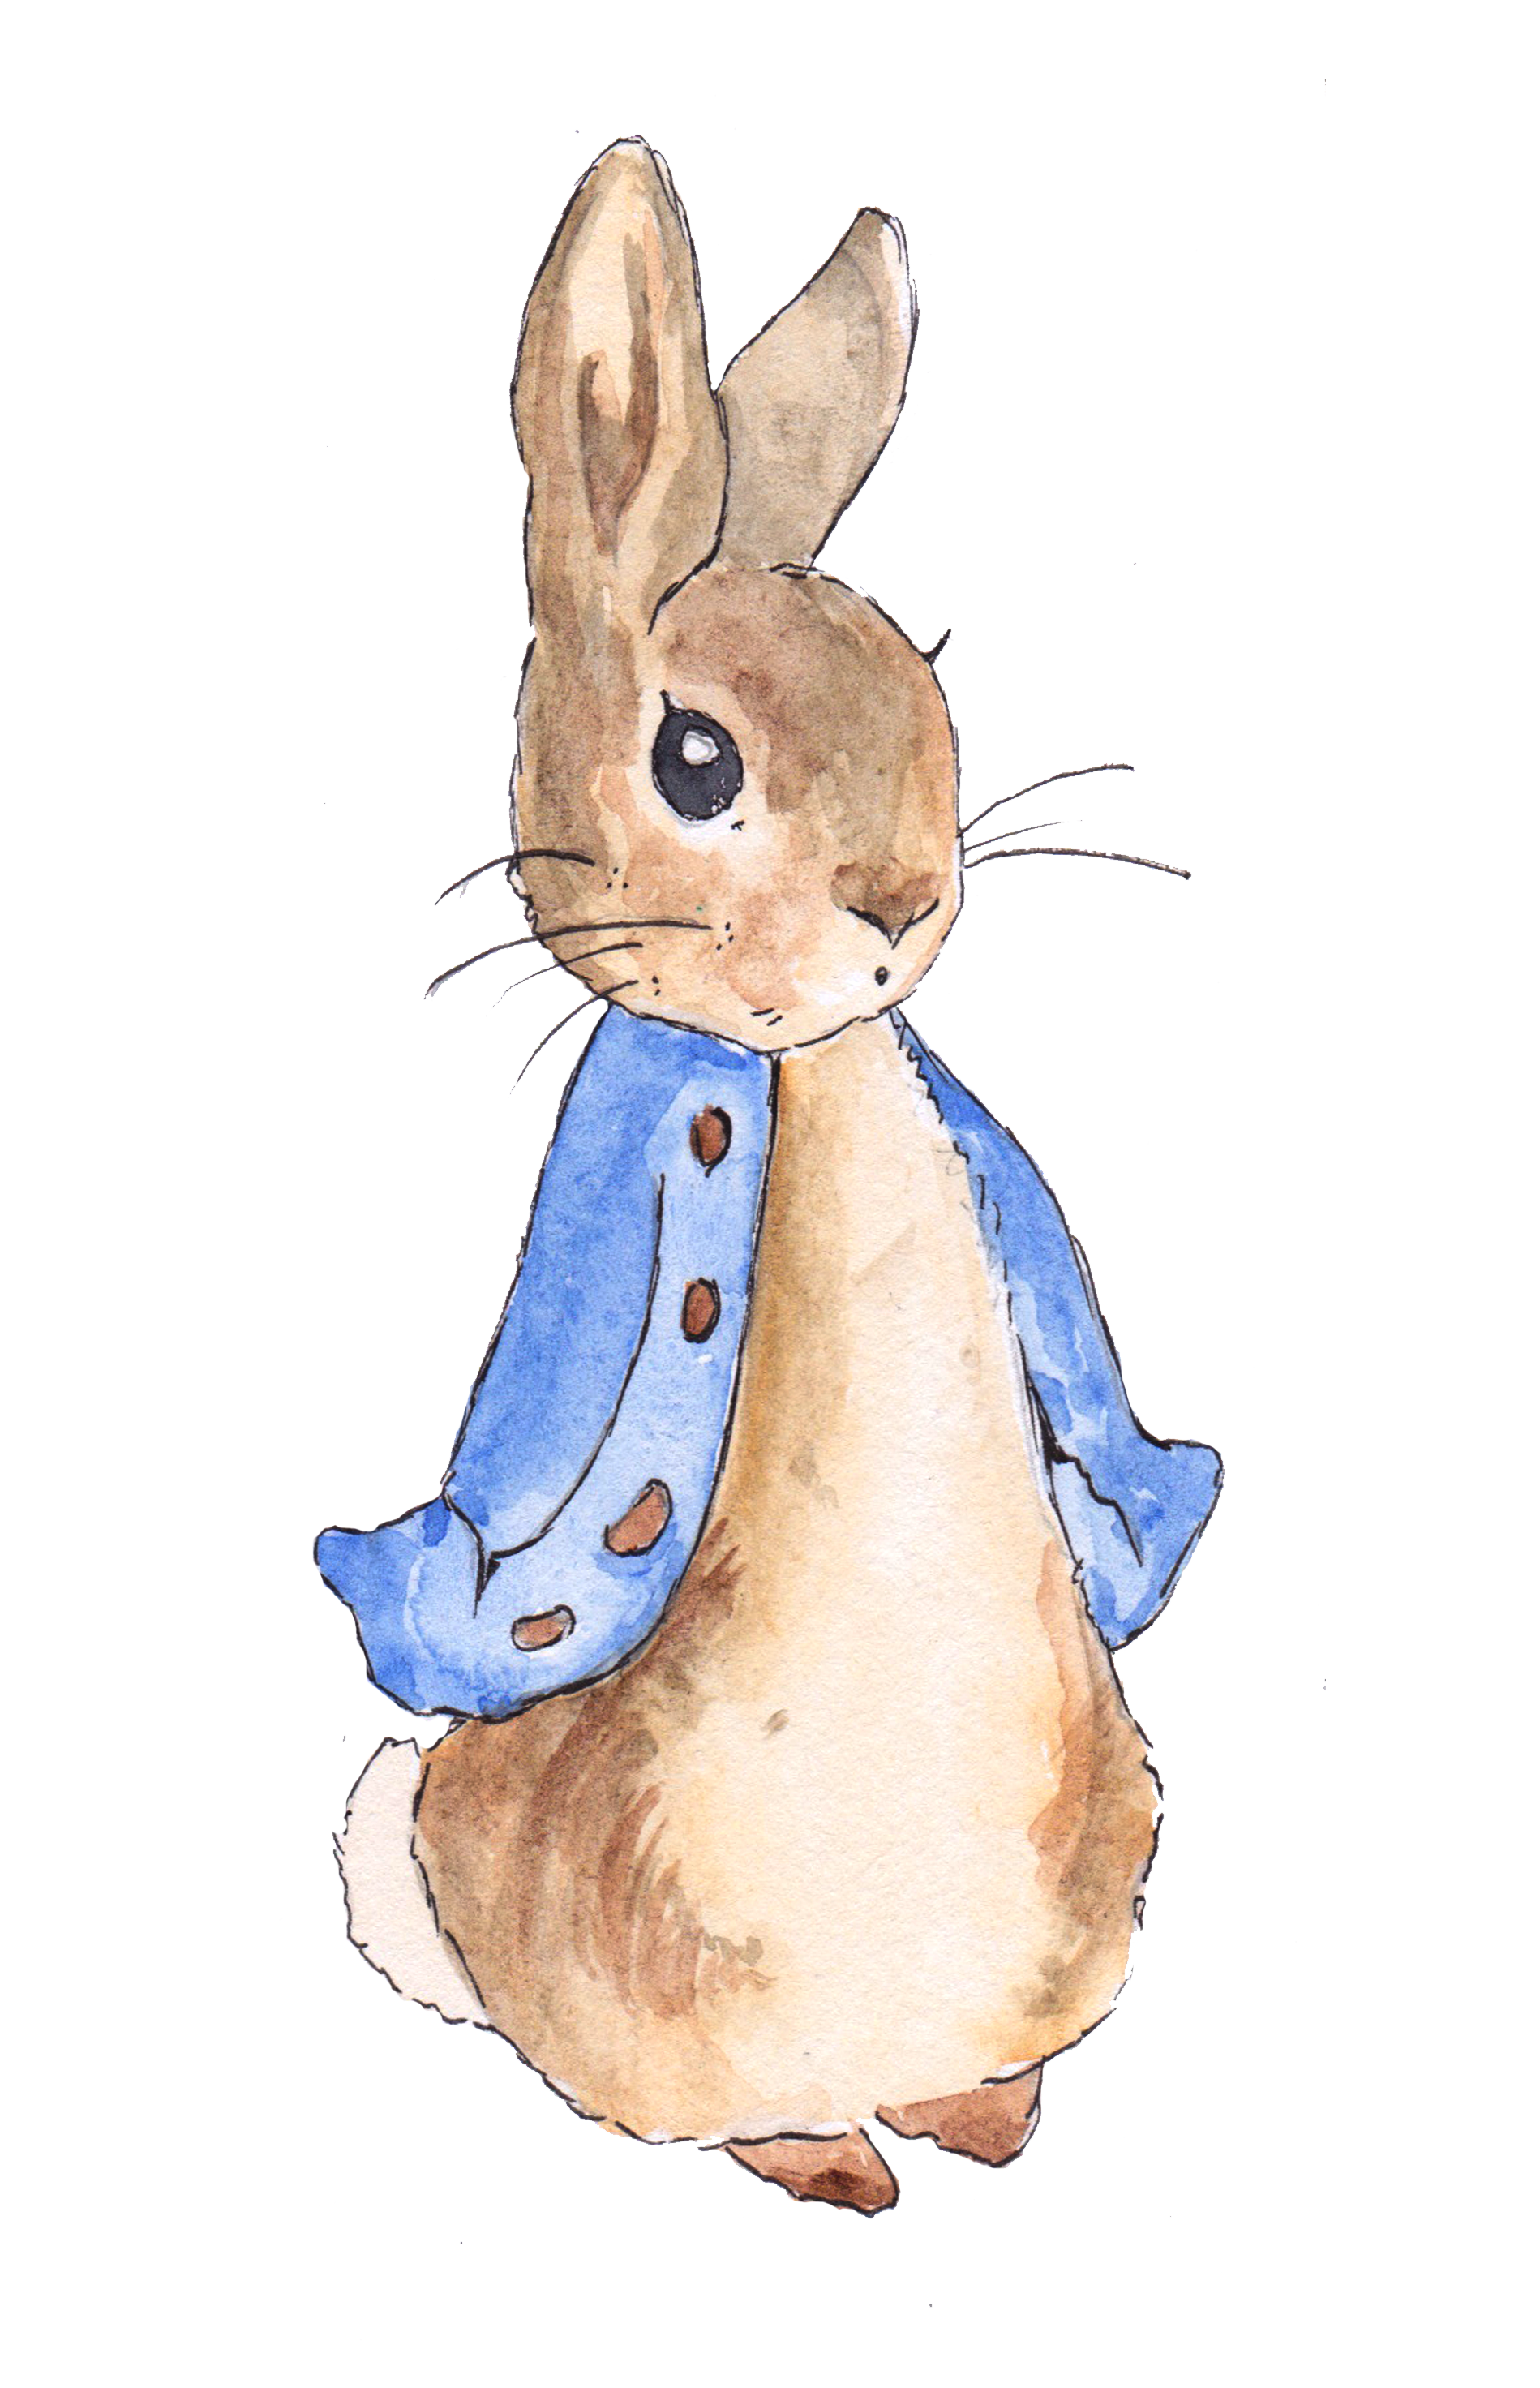 Watercolor laundry linen clipart image library stock Peter Rabbit | Party Themes in 2019 | Peter rabbit birthday ... image library stock